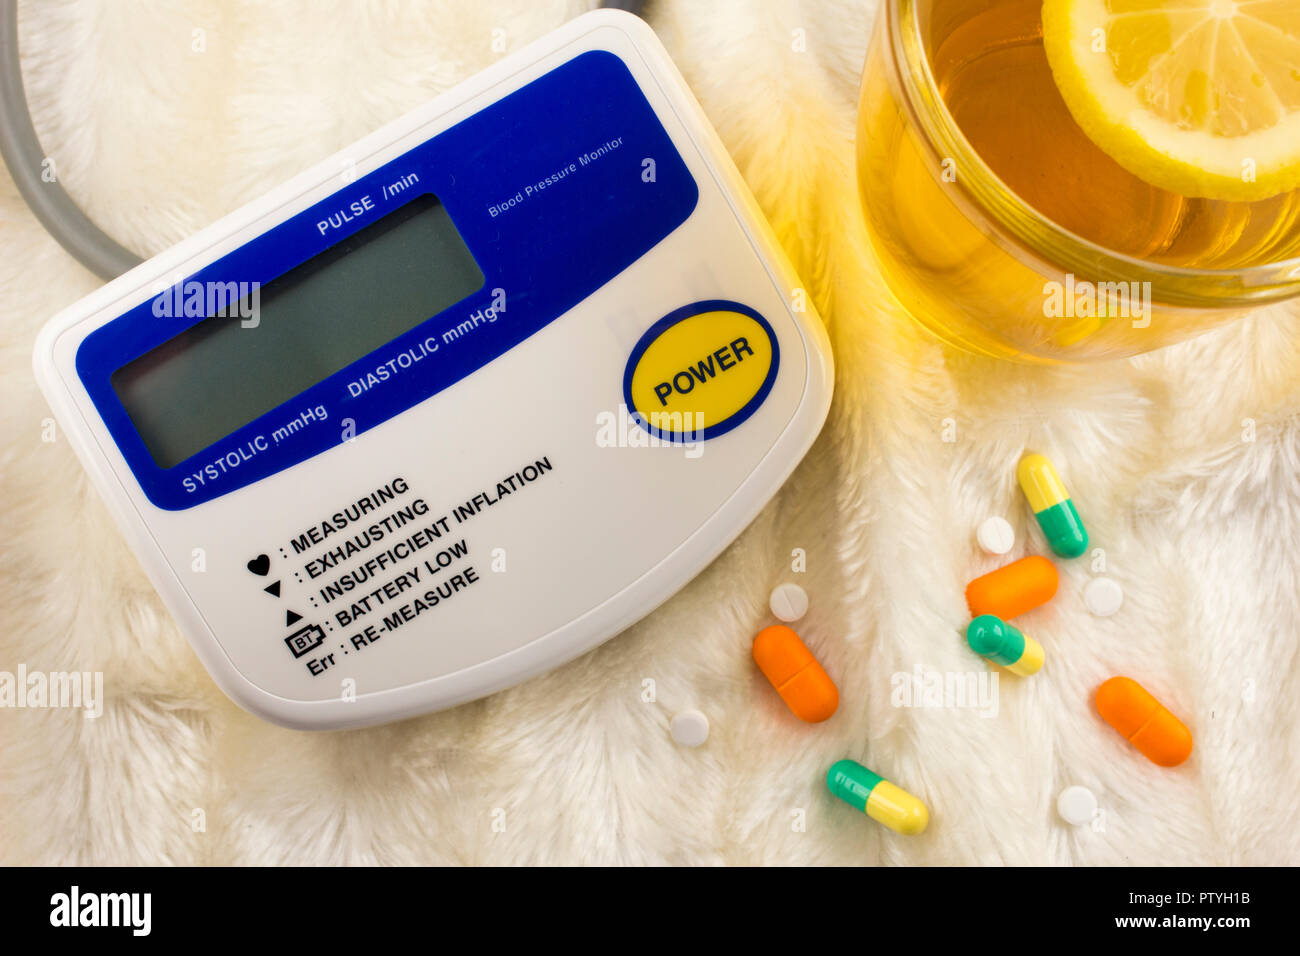 Apparatus for measuring pressure, tablets tea with lemon - Stock Image